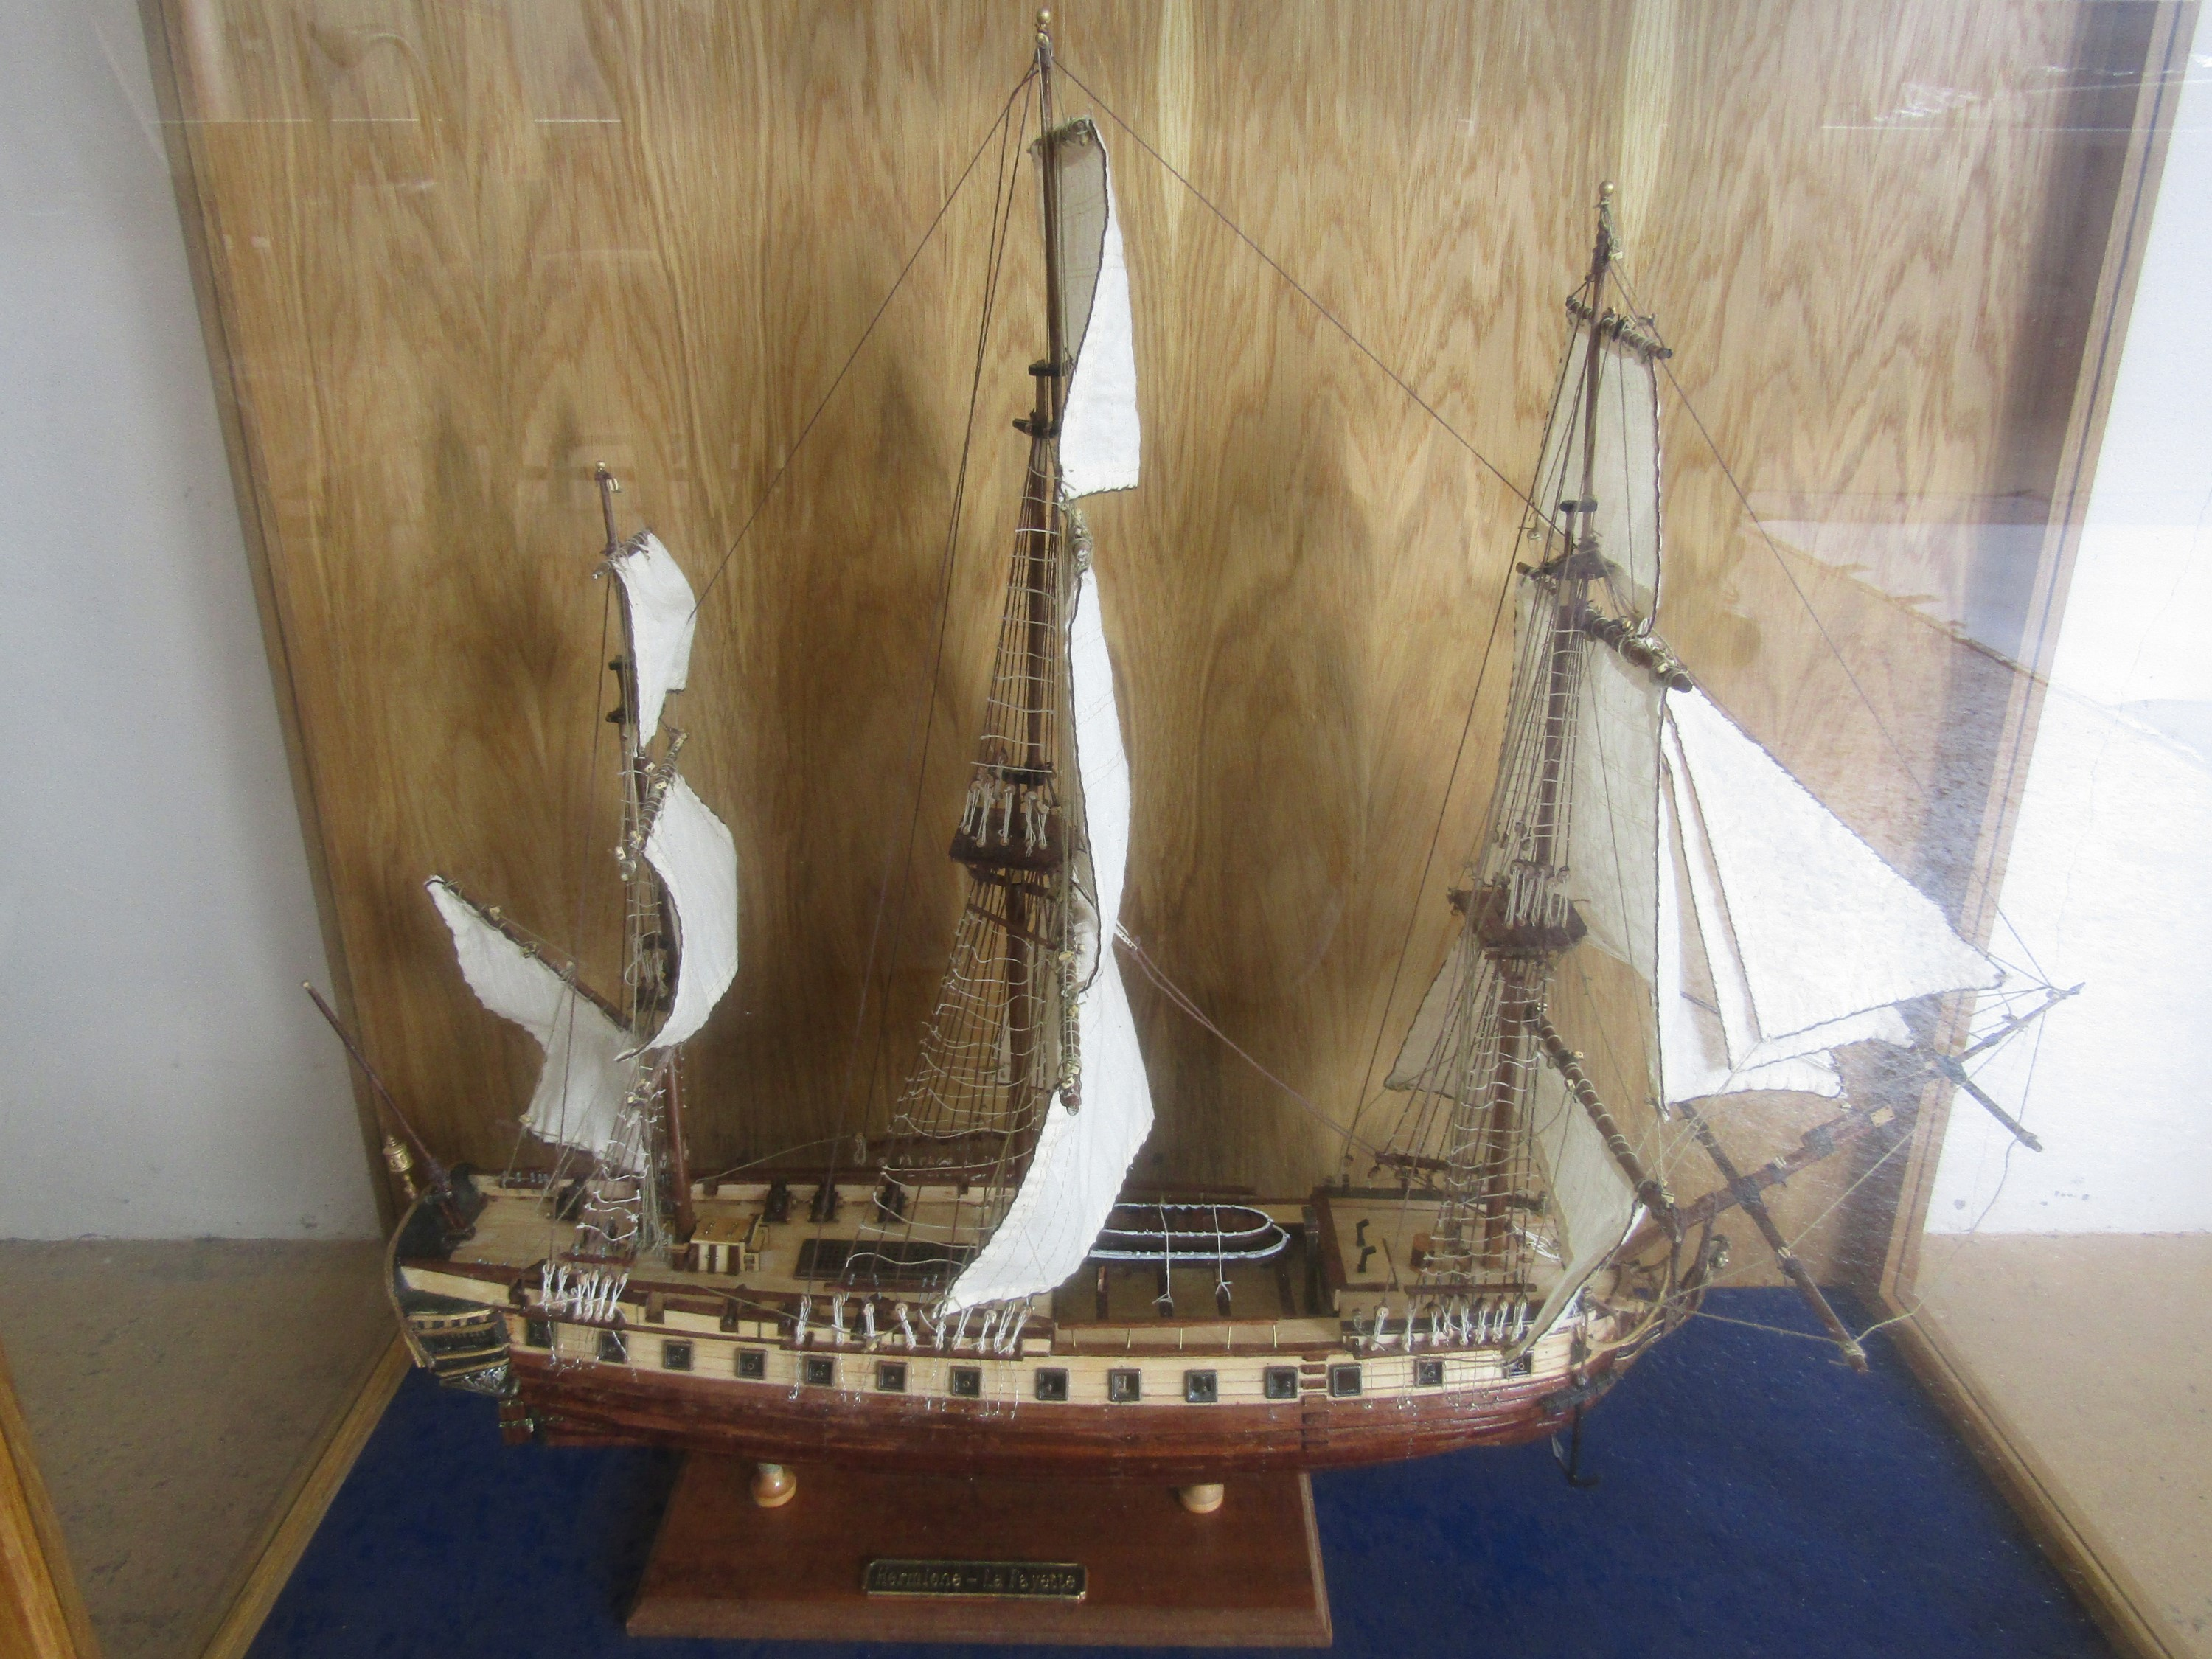 Lot 28 - A large hand-built wooden scale model of the American Revolutionary War period French military